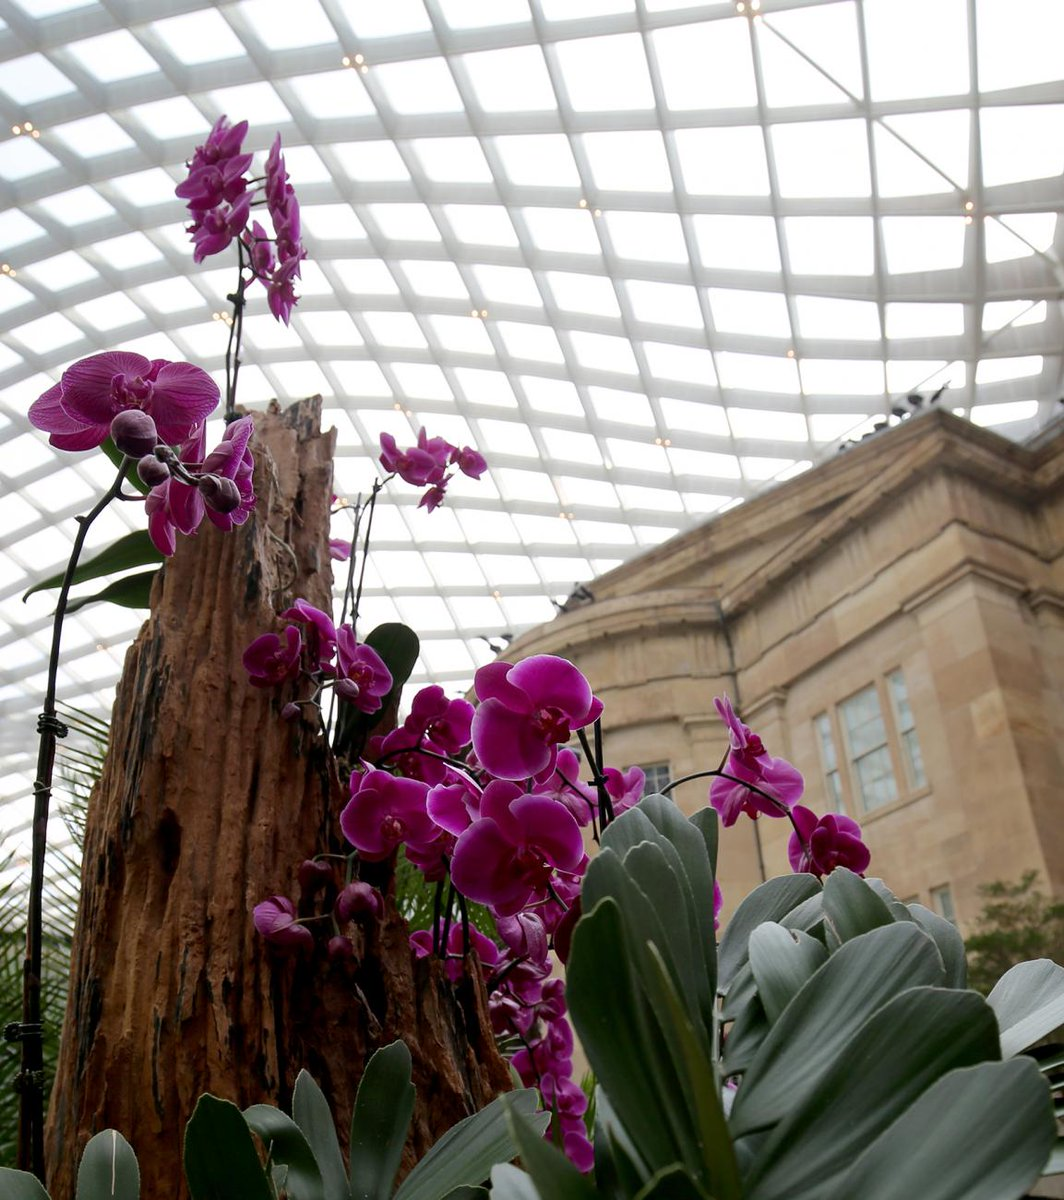 Did you know that orchids are found on every continent except Antarctica? Starting today, thanks to @SIGardens  you'll find these vibrant blooms in the #KogodCourtyard #atSAAM and @NPG  → https://americanart.si.edu/exhibitions/orchids…